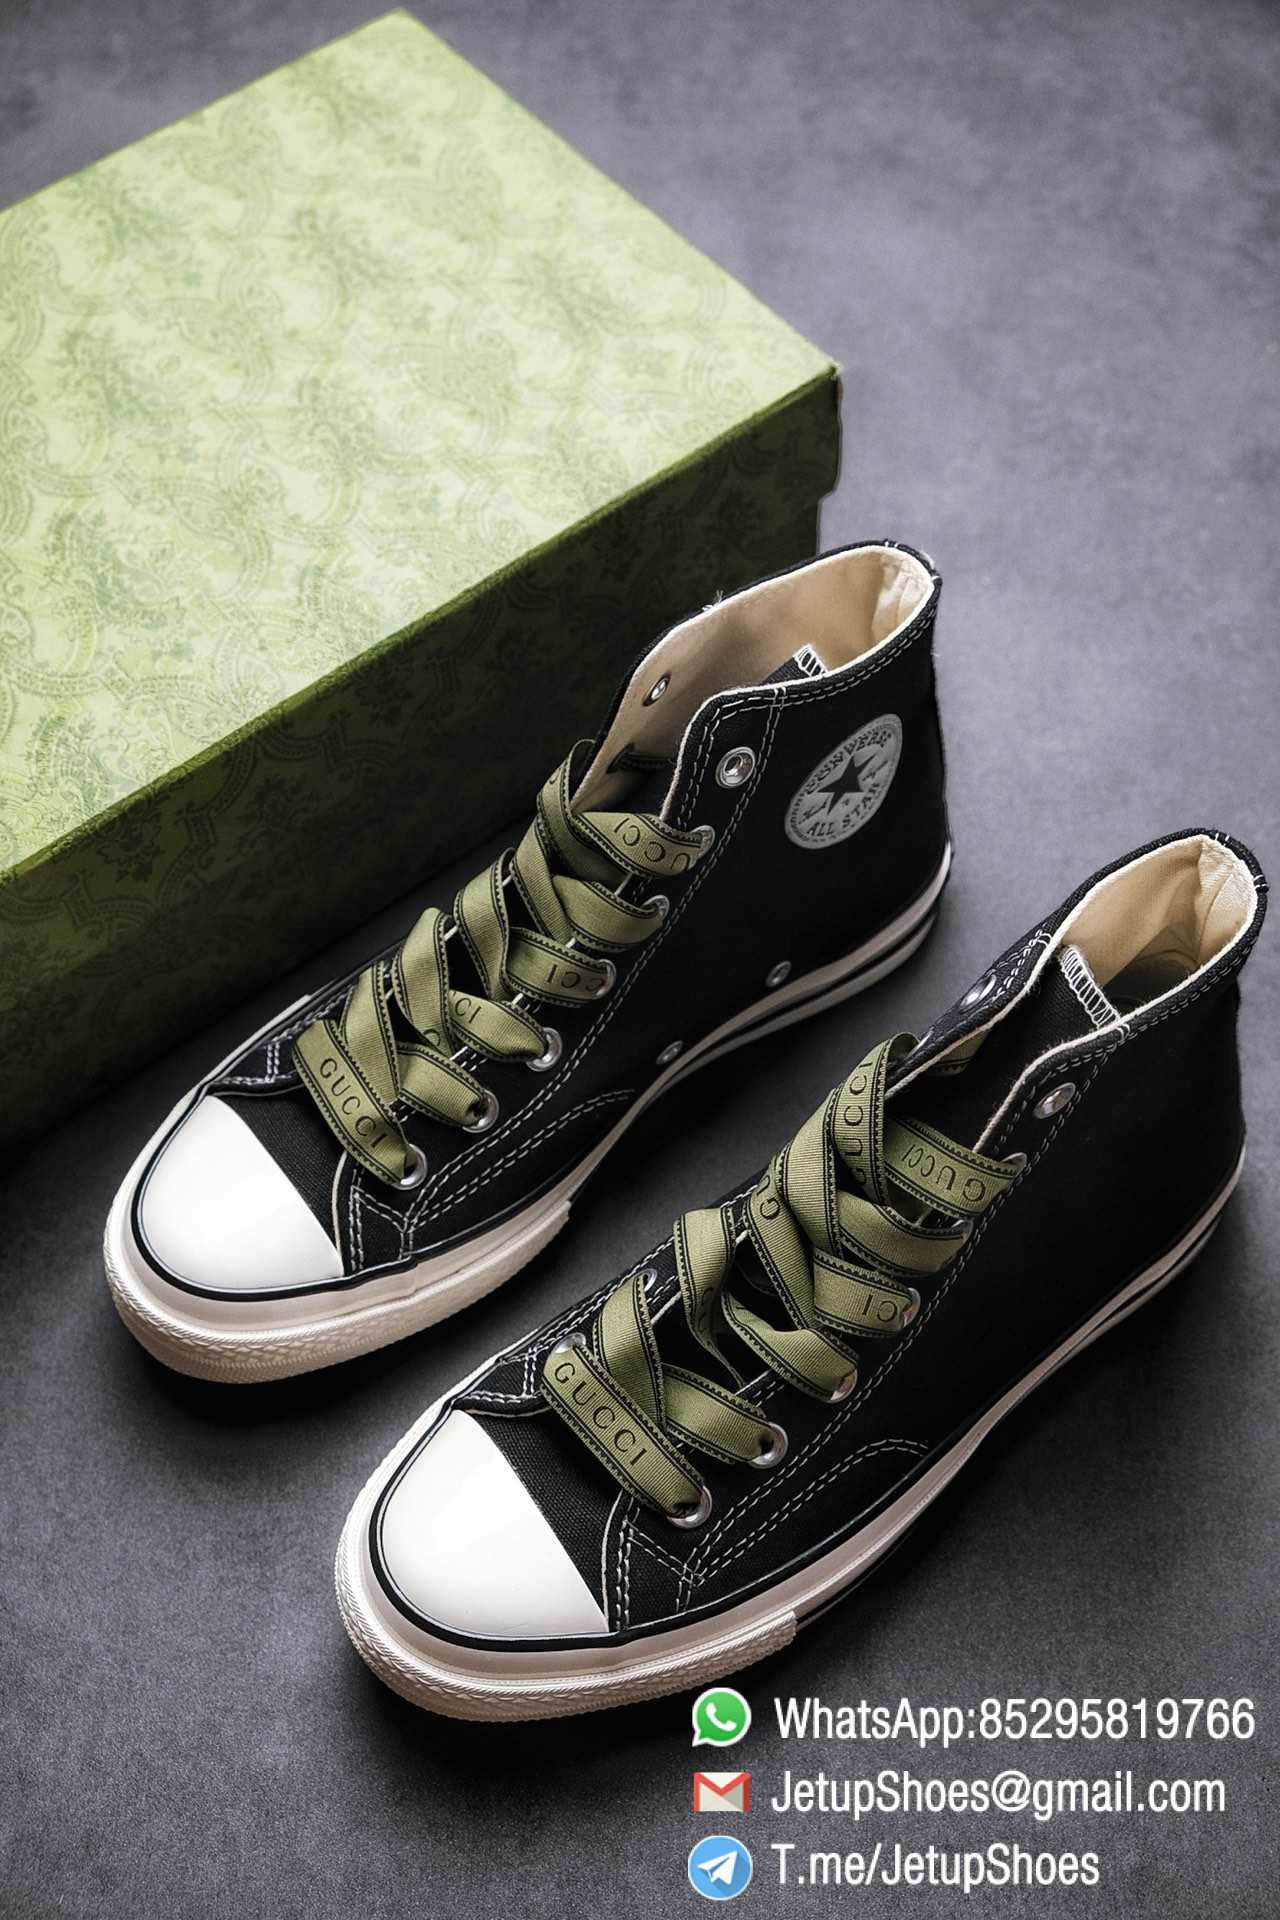 Womens Converse x Gucci Tennis 1970S High Top Sneaker Vintage Inspired Green Shoelace Black 2021 Spring 01